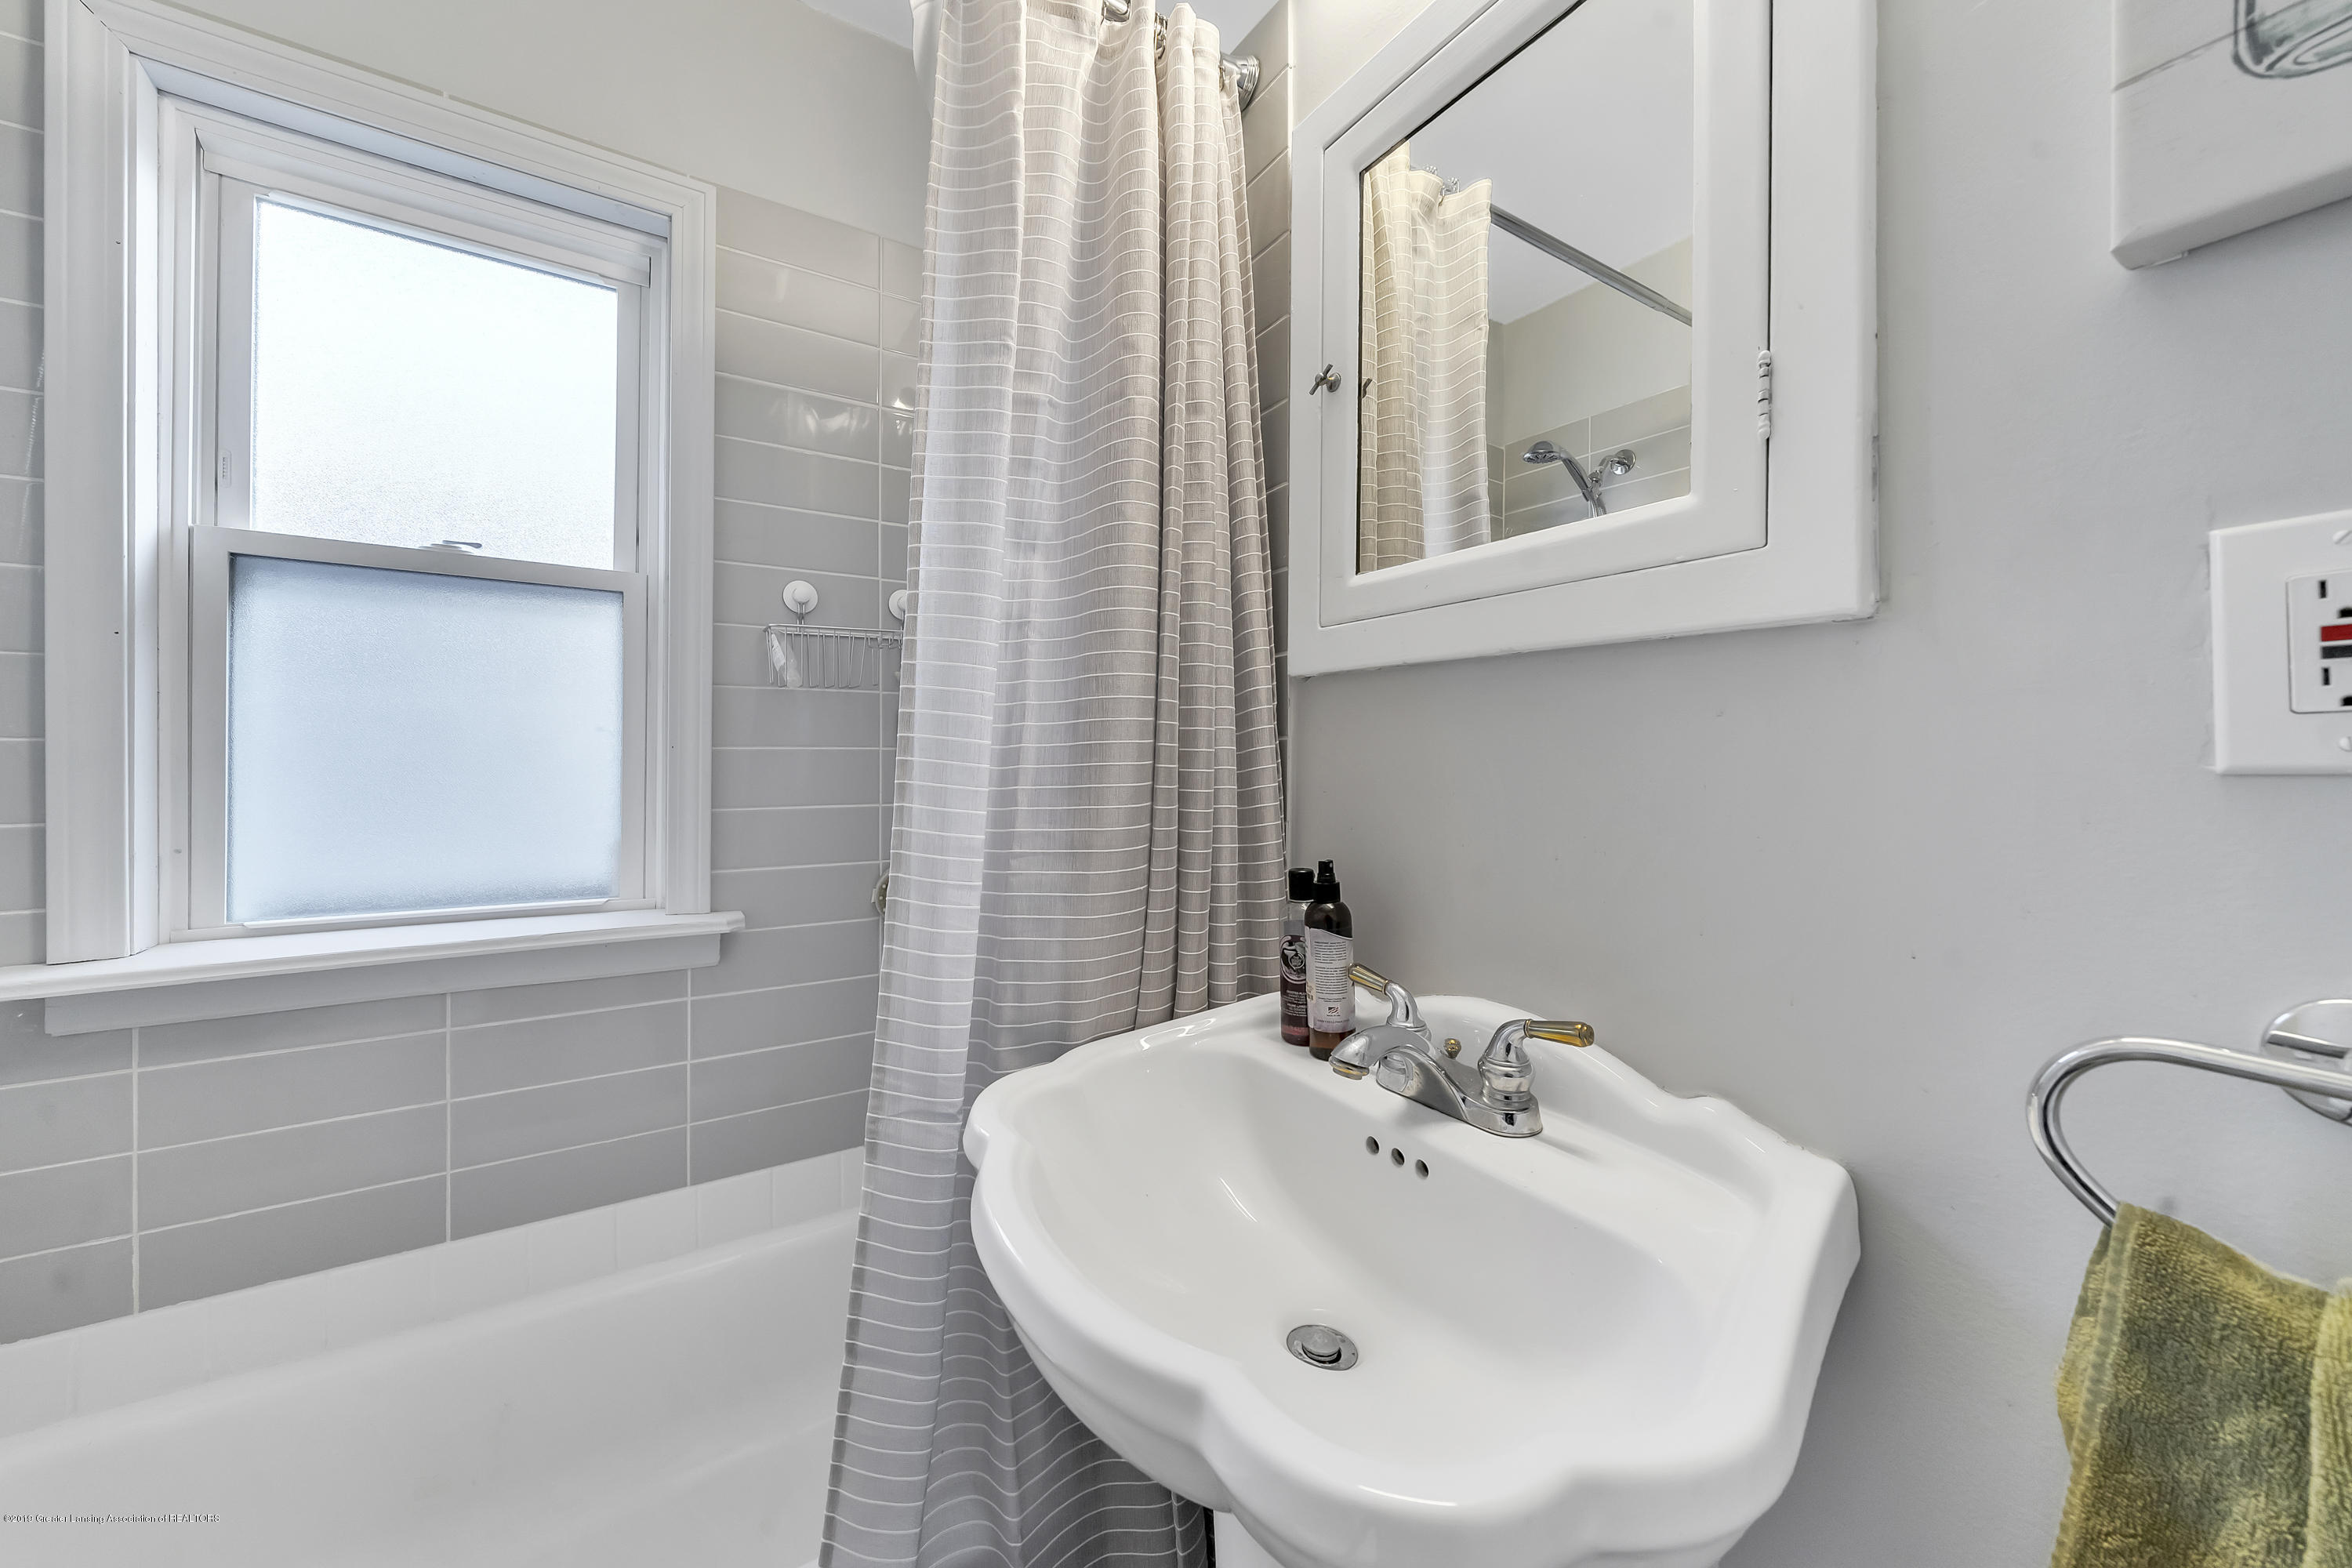 1004 S Holmes St - 1004-S-Holmes-st-WindowStill-Real-Estate - 19